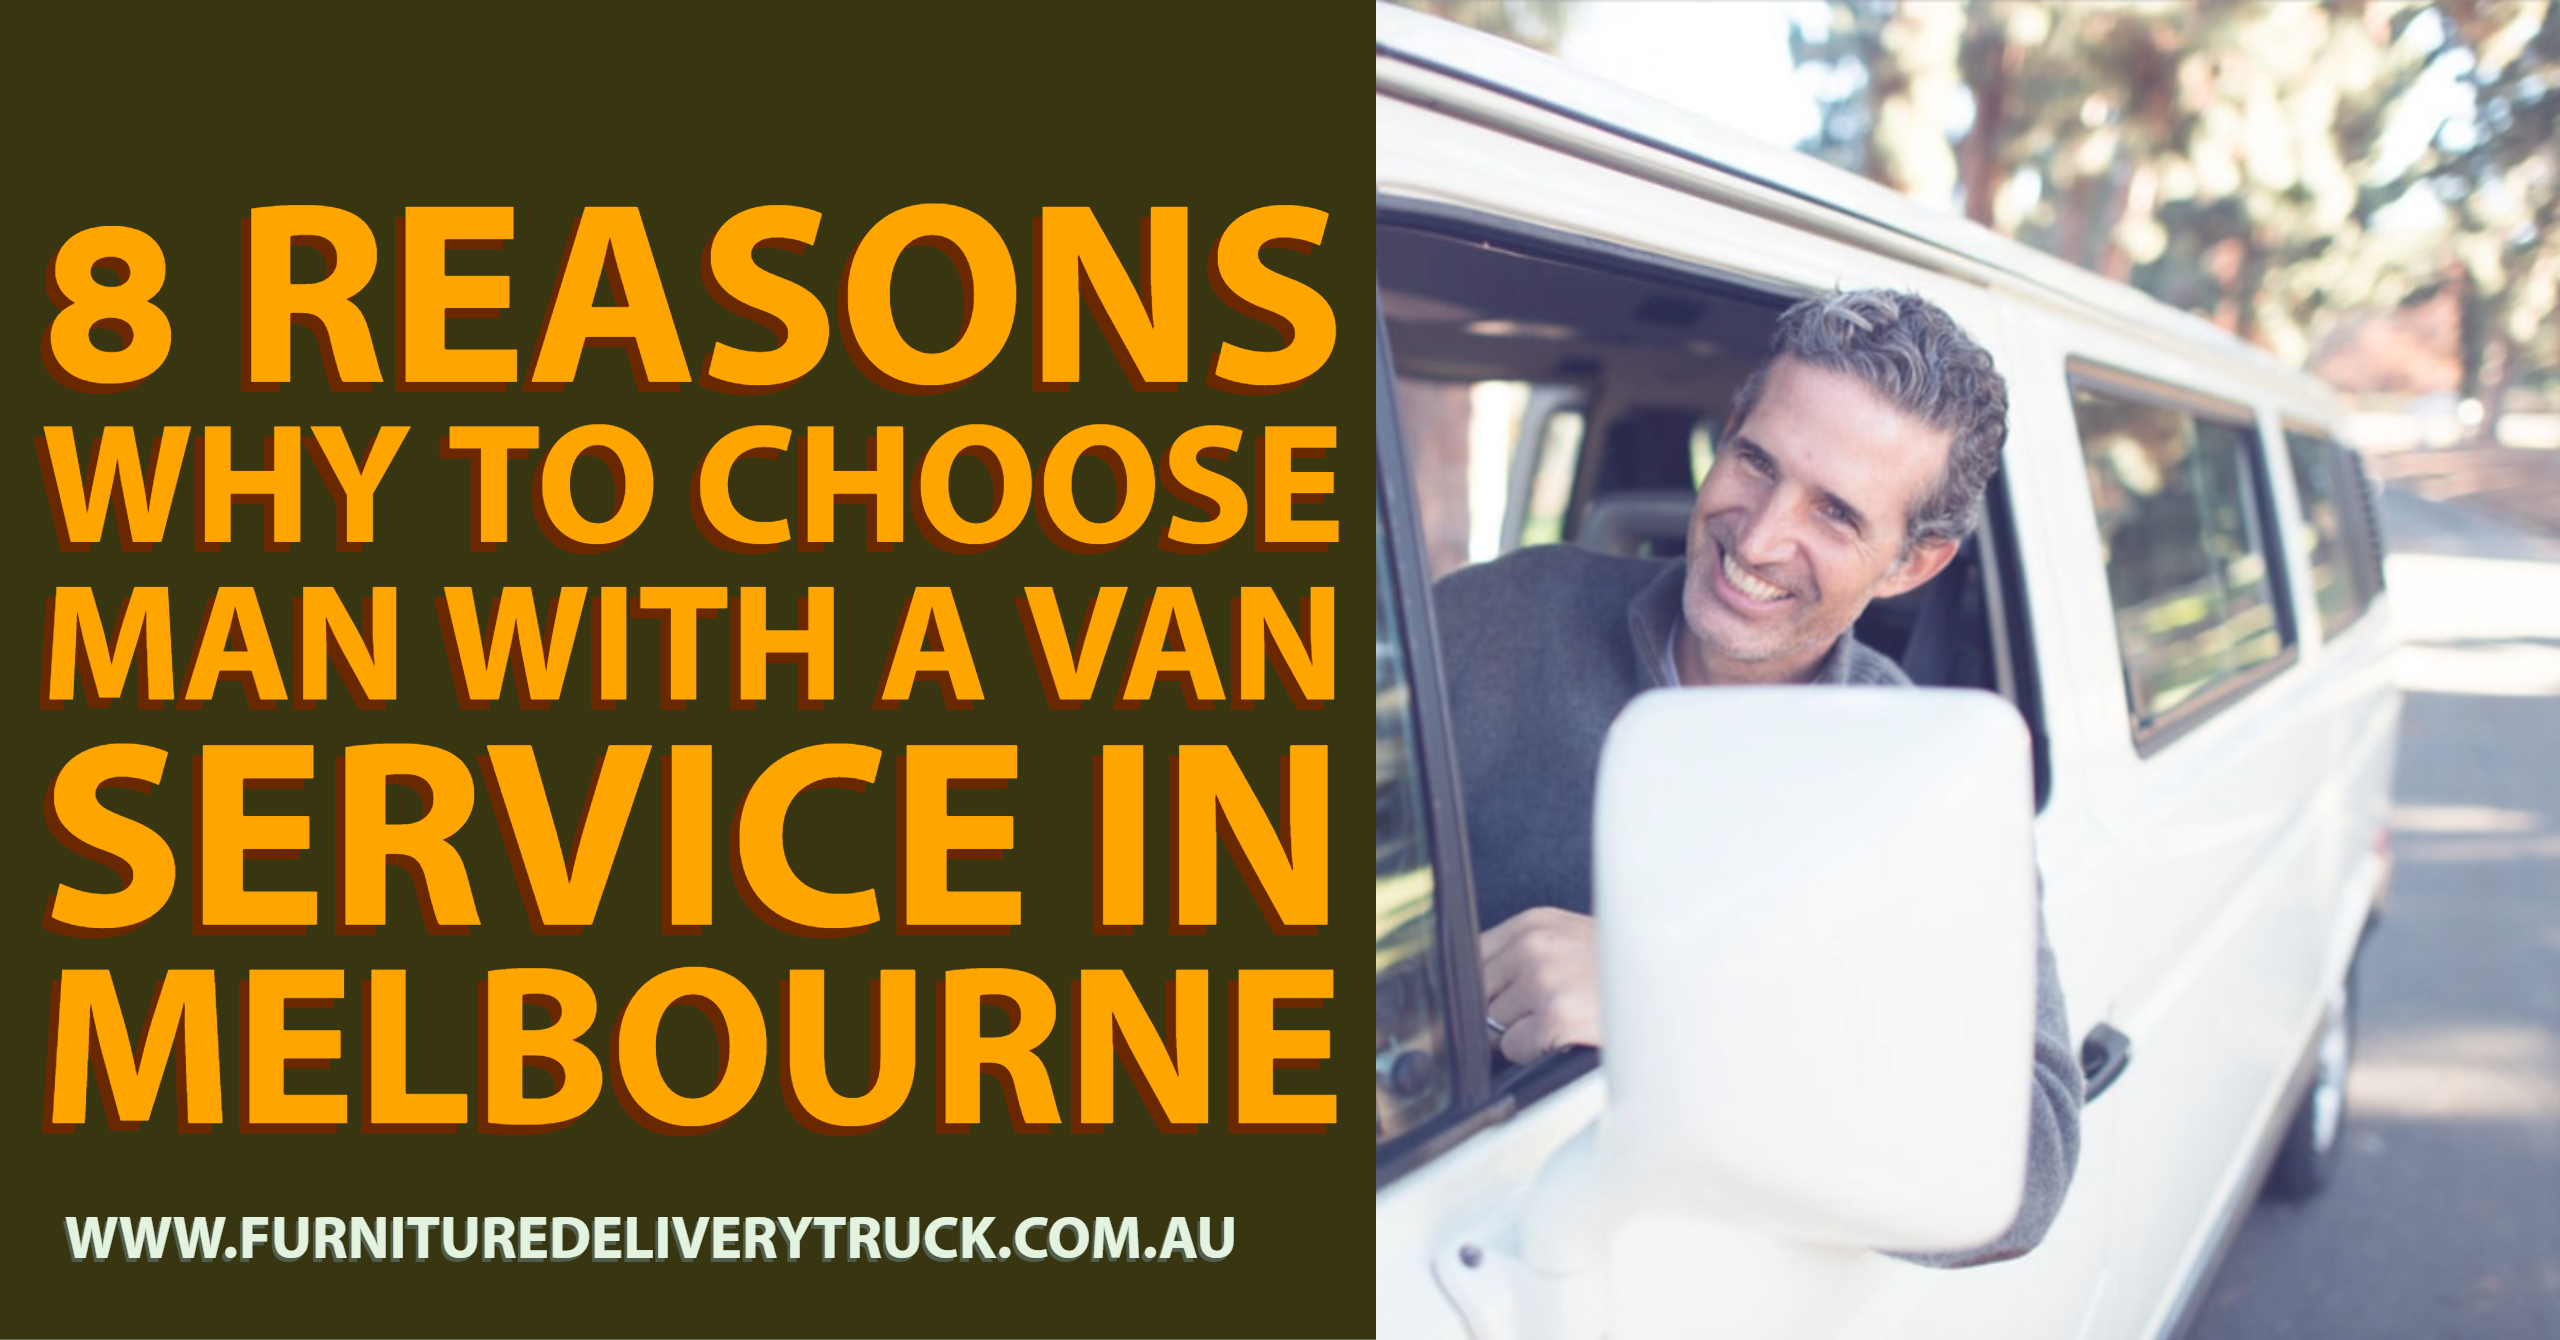 8 Reasons Why to choose Man with a Van service in Melbourne